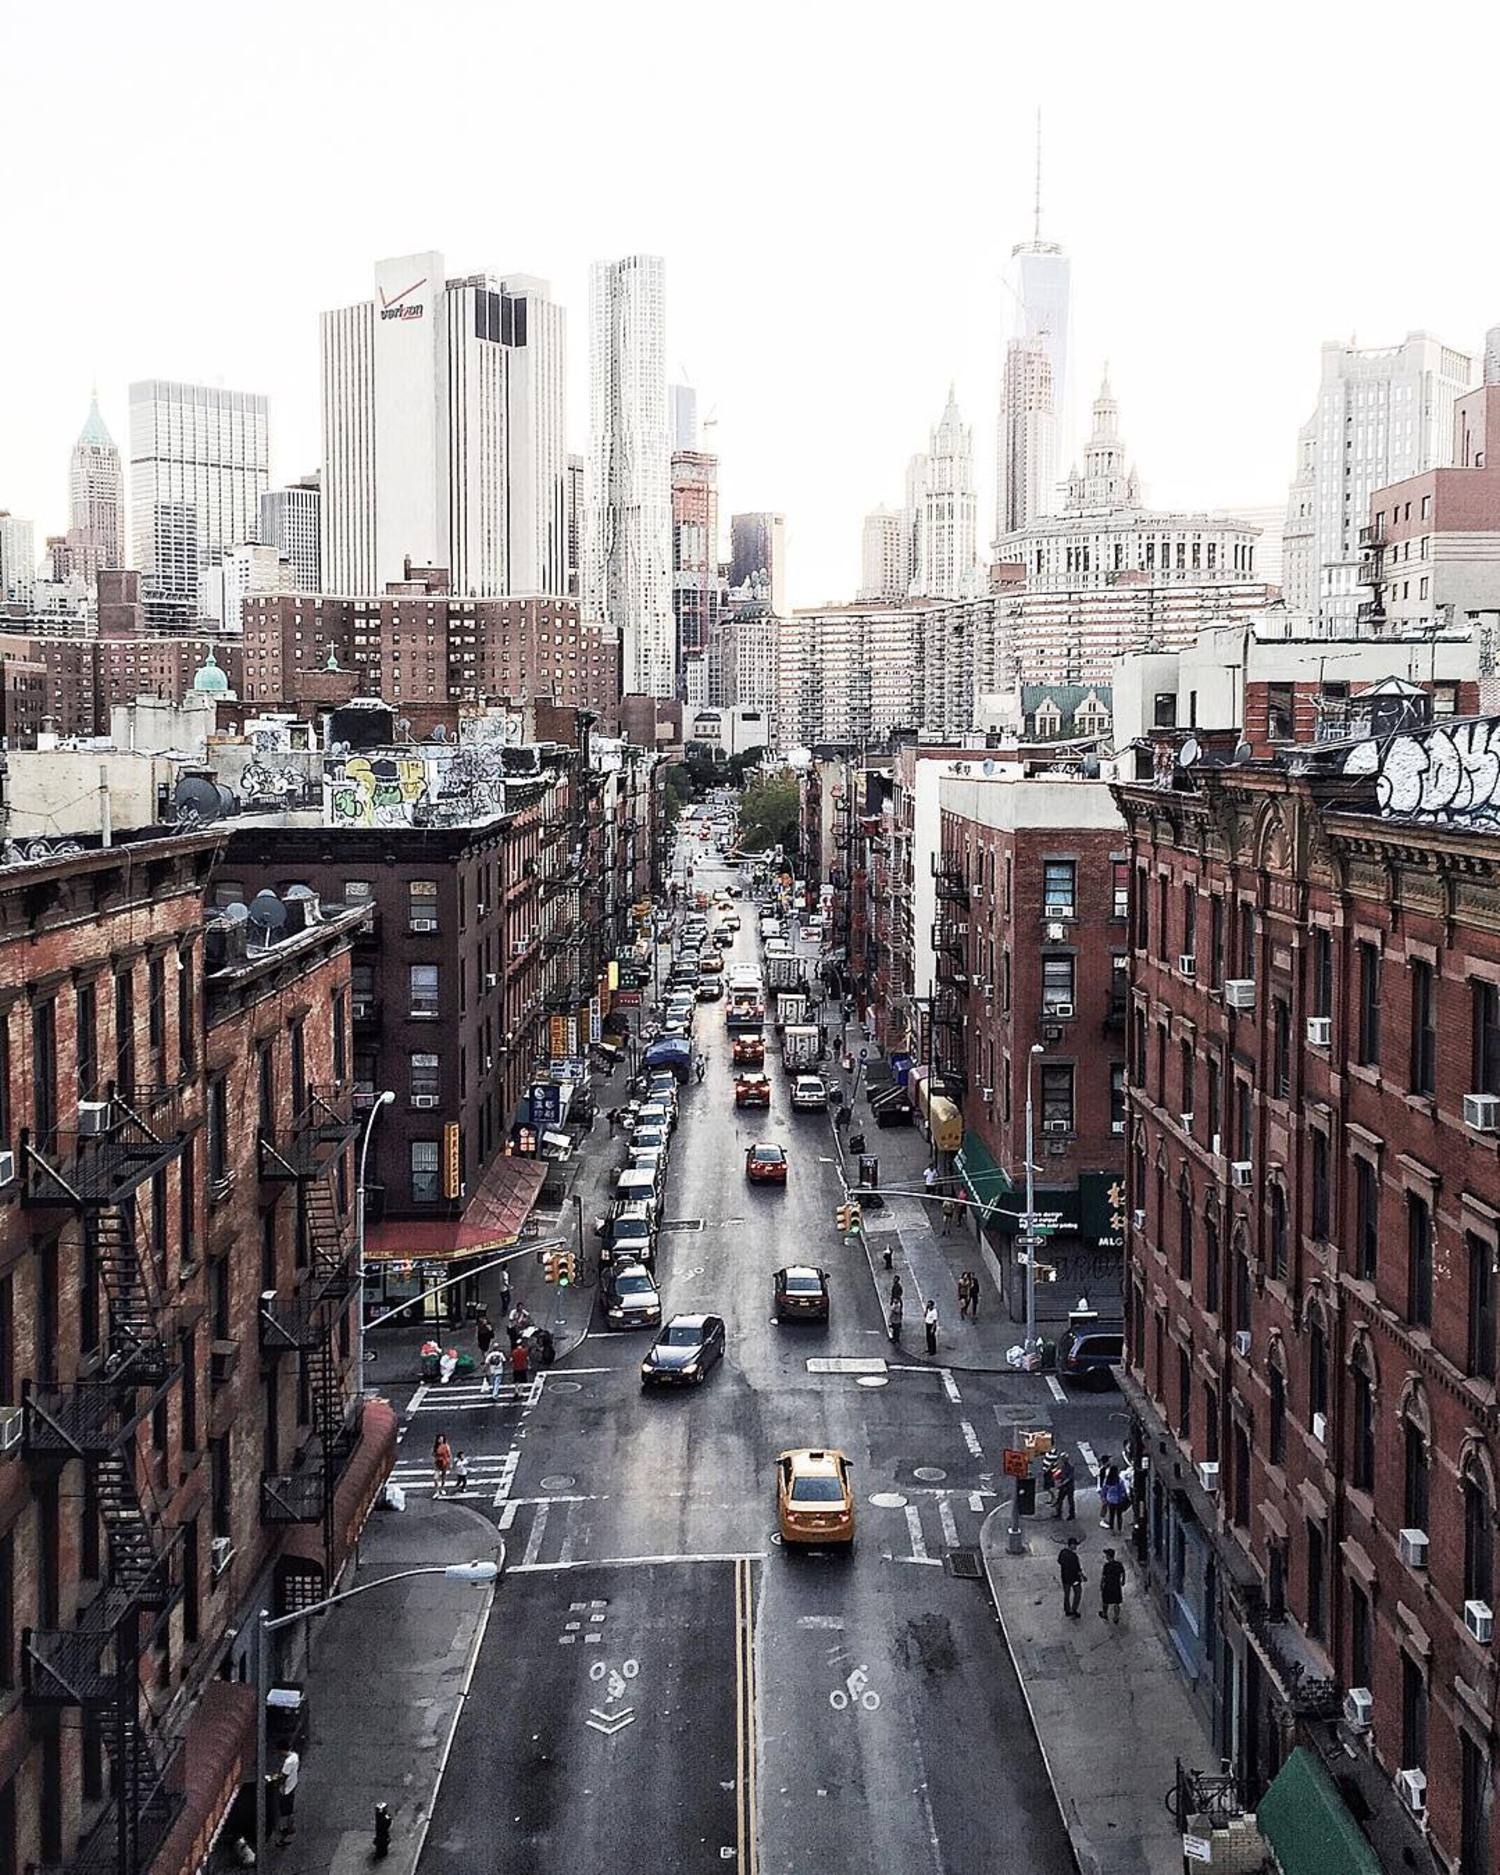 Where I'd rather be... ❤️ #newyork #repost #travel